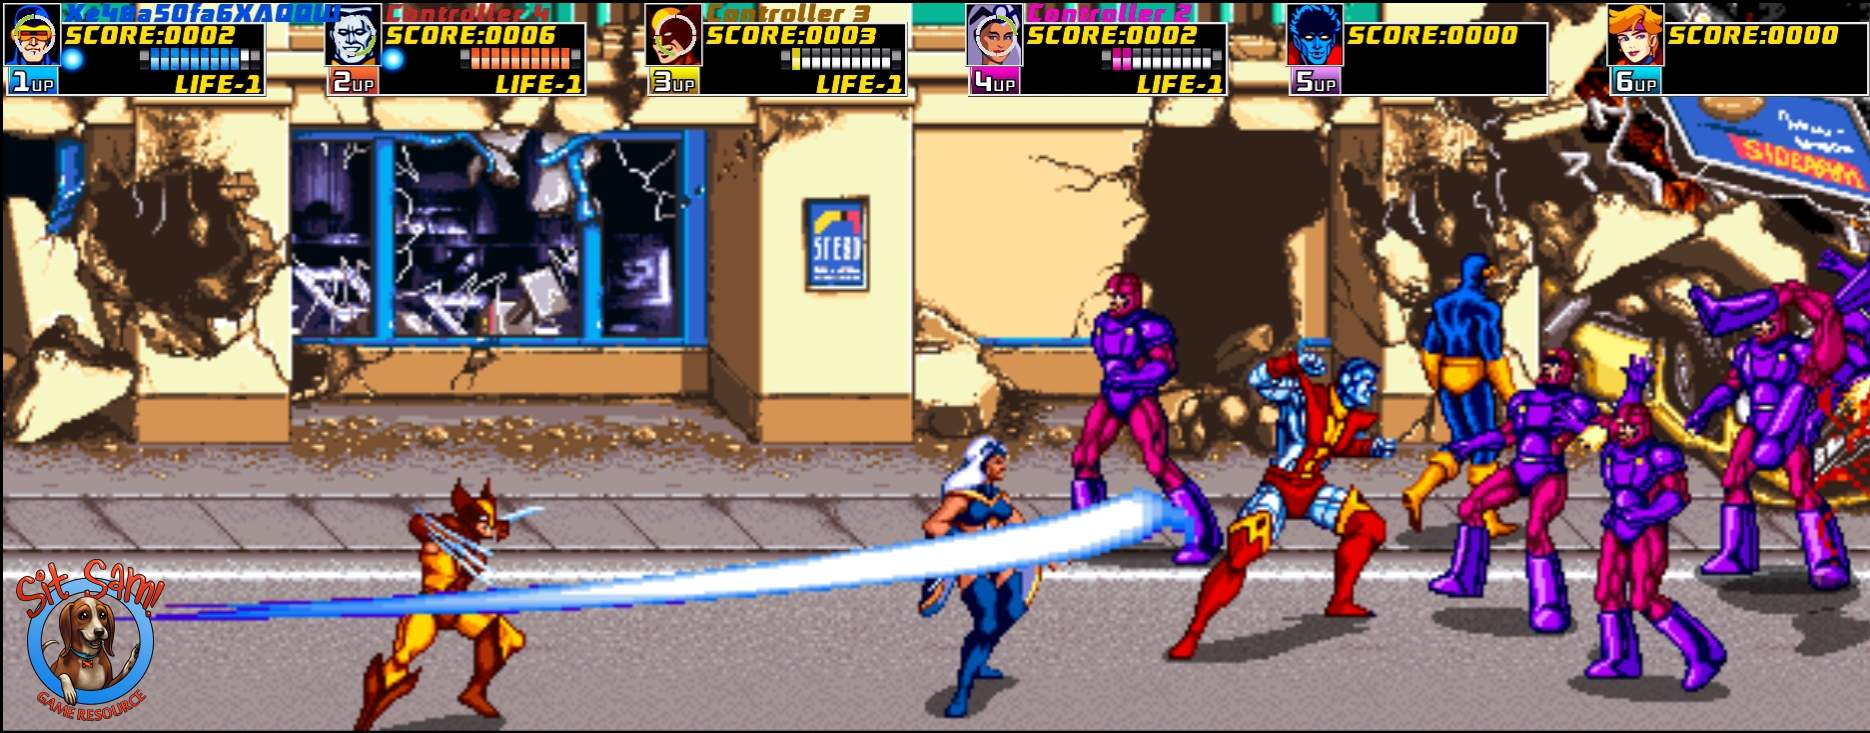 X-Men Arcade Gameplay